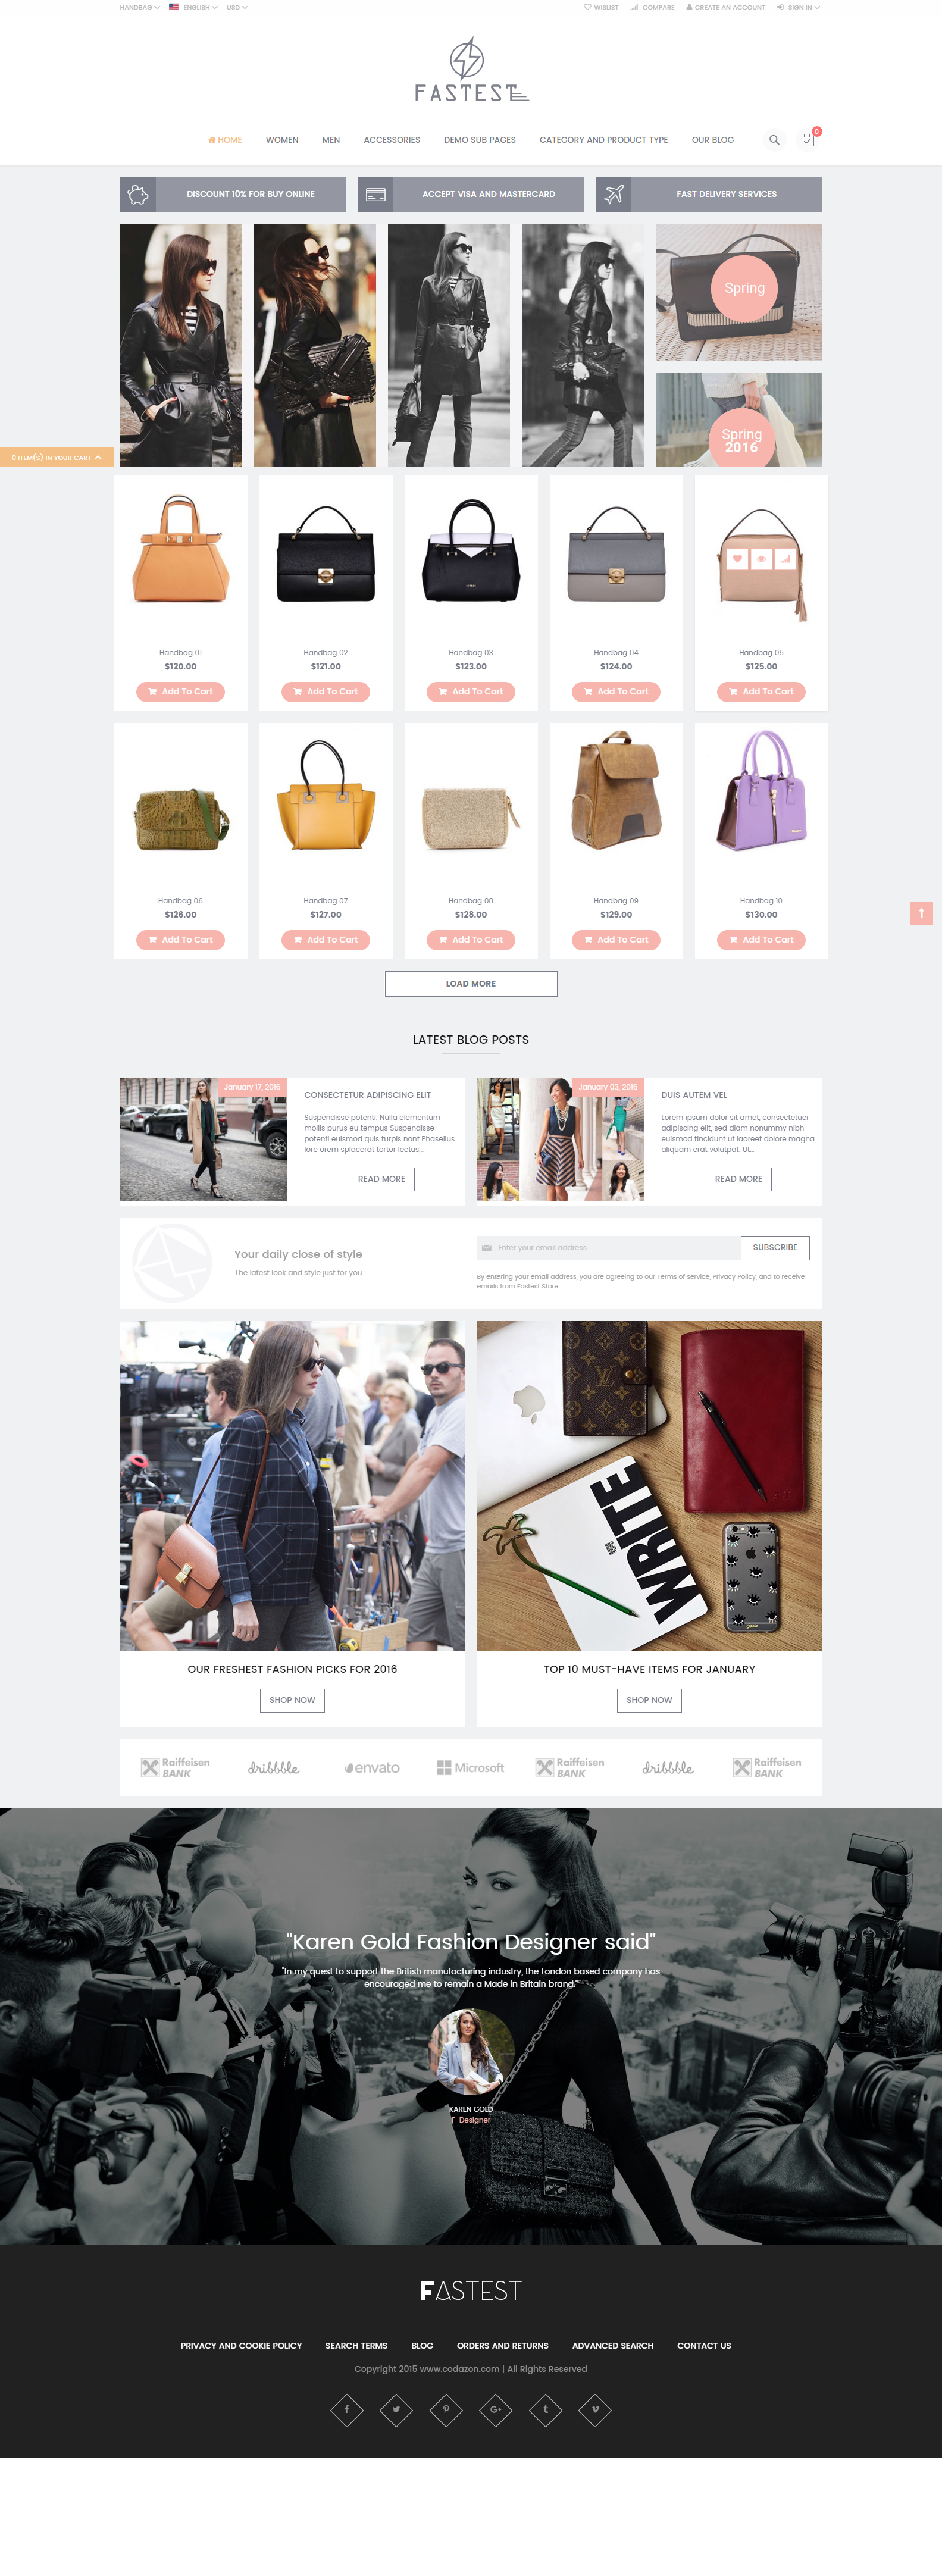 Gmail themes designer